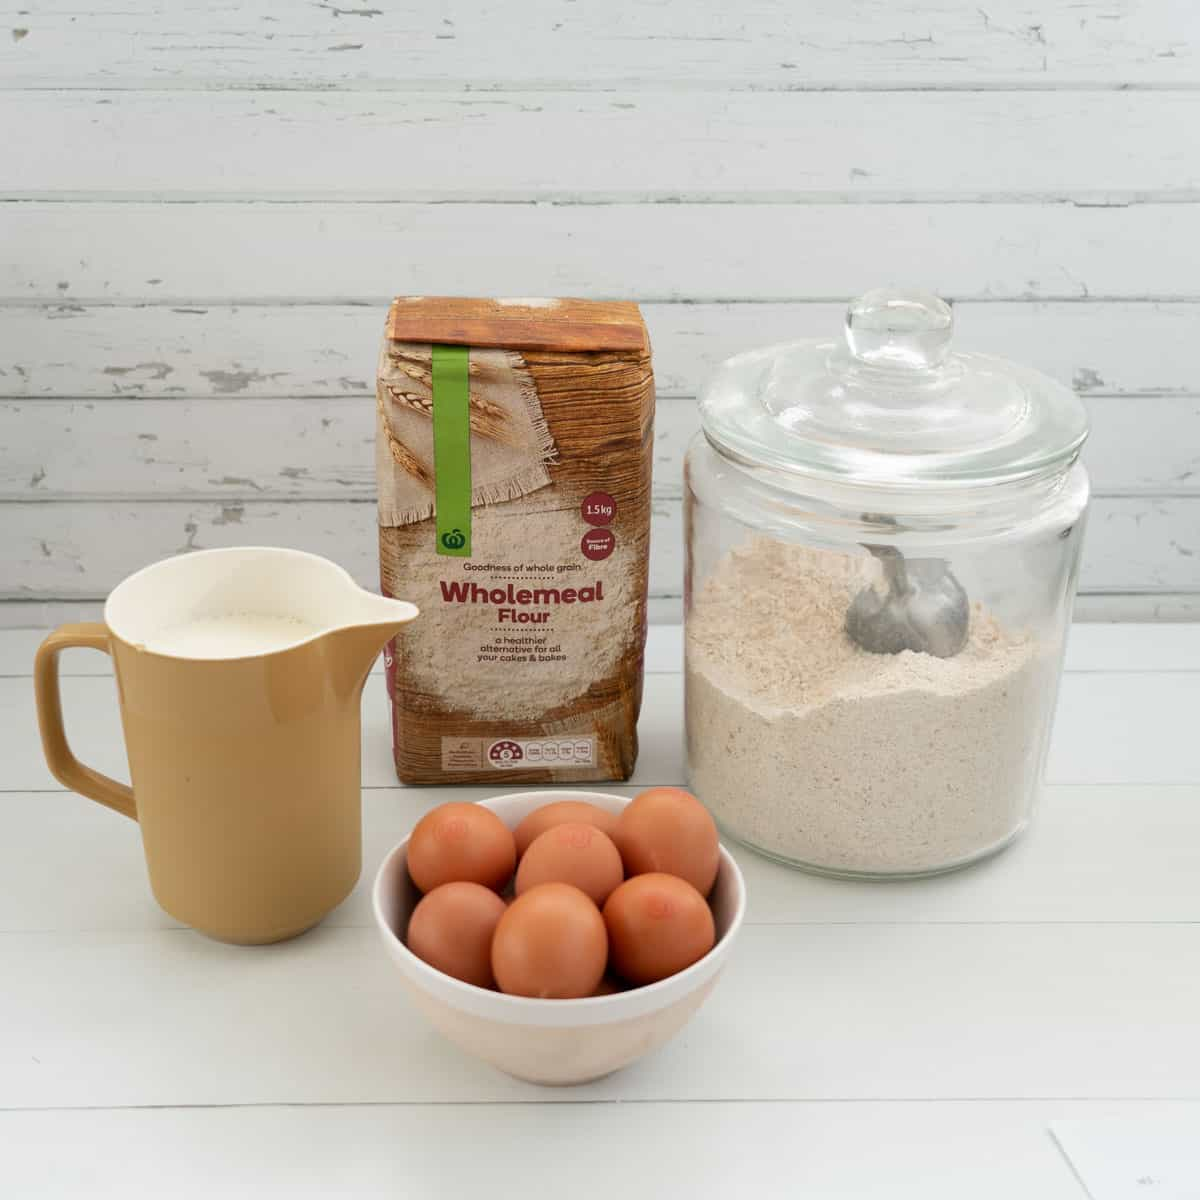 jug of milk, bowl of eggs, bag of wholemeal flour and large glass flour jar with scoop